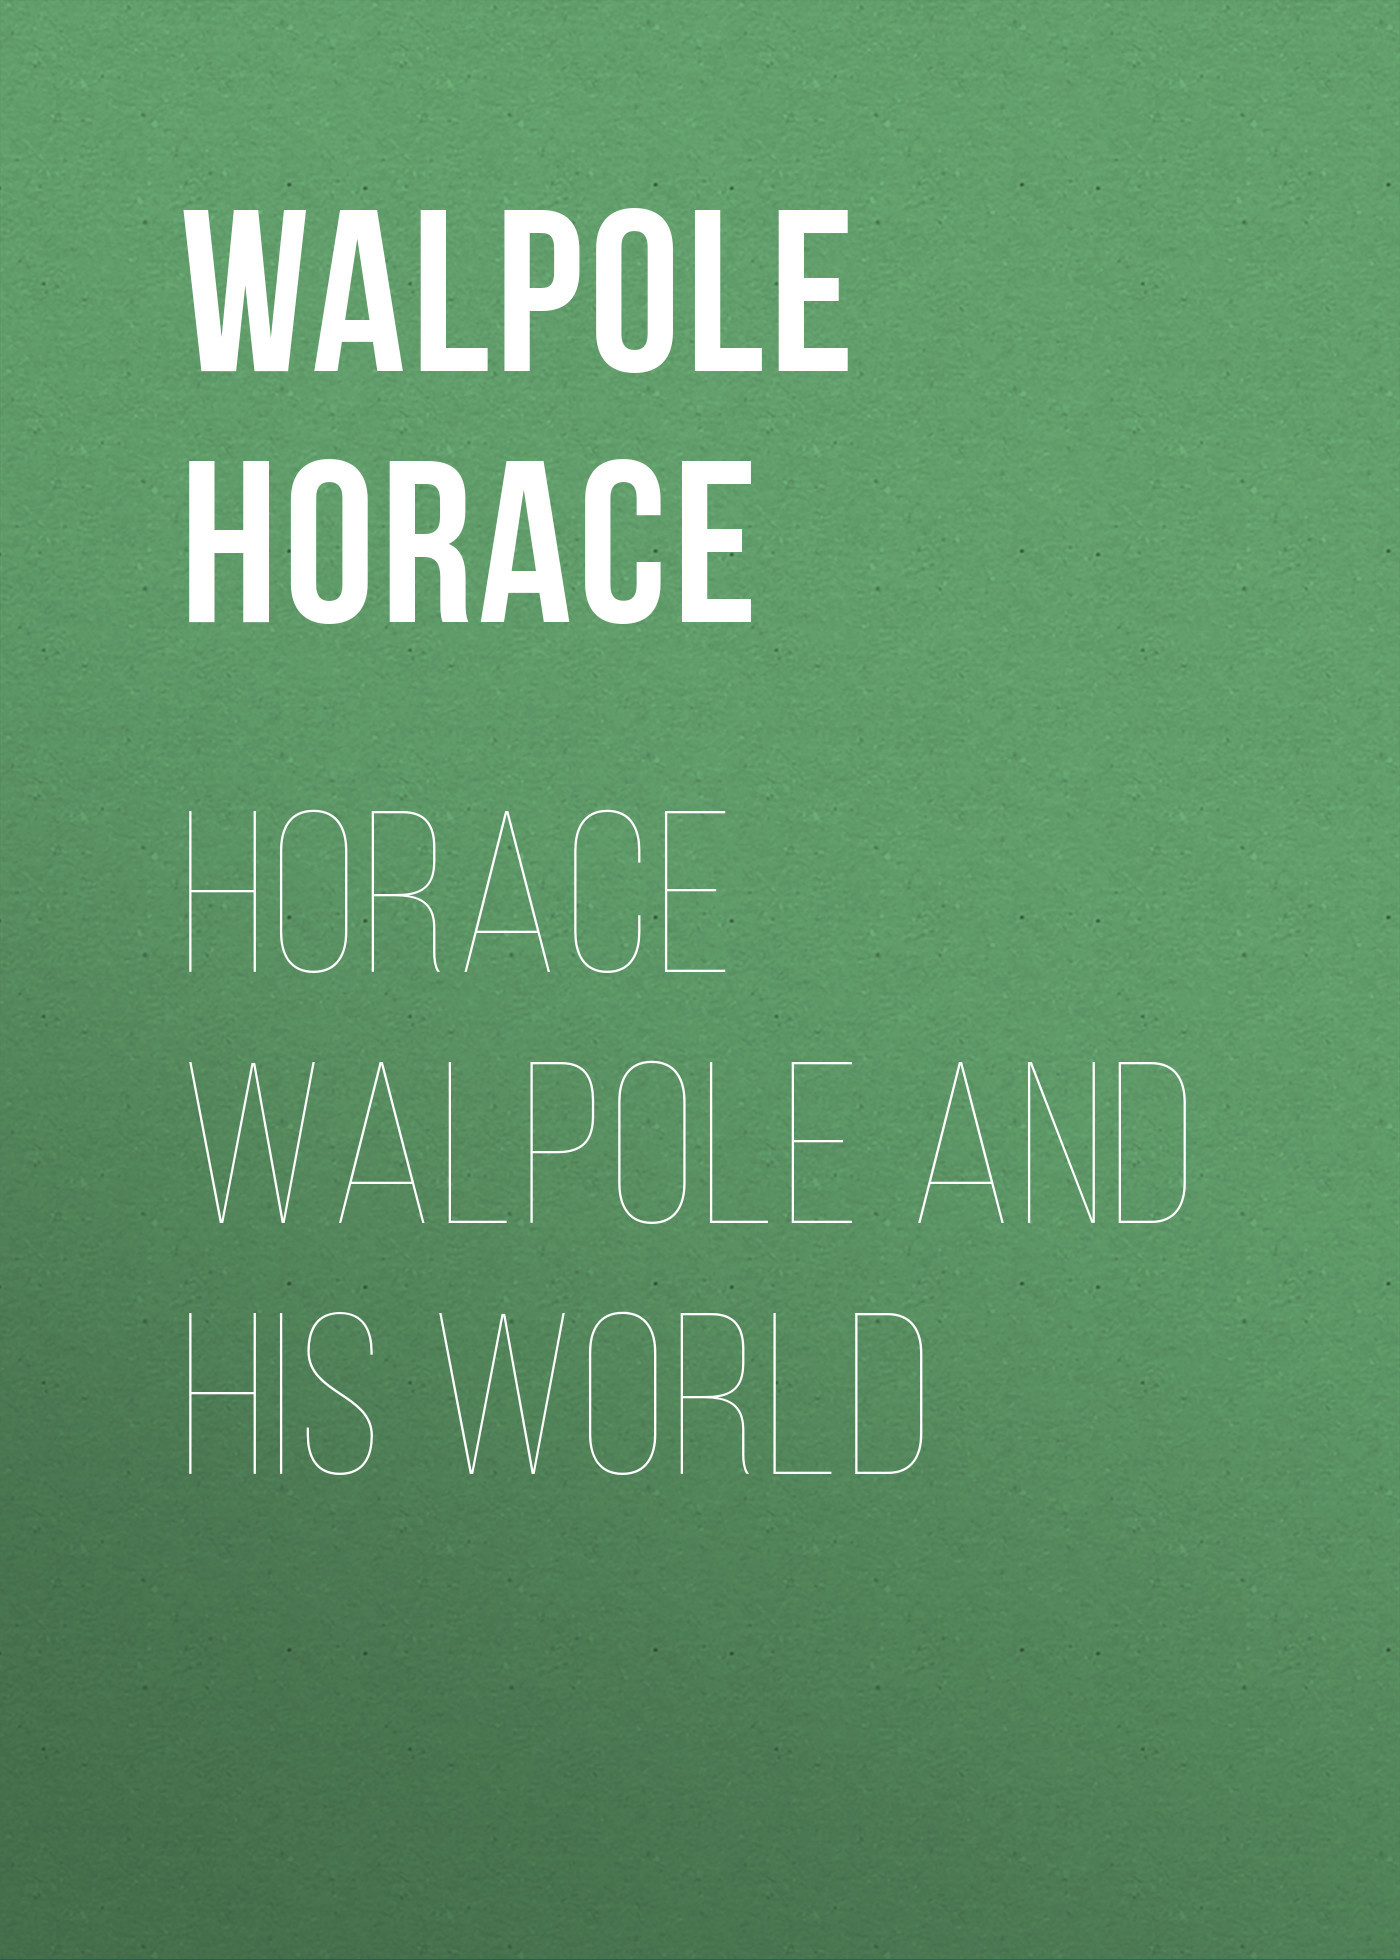 Horace Walpole Horace Walpole and his World woolson constance fenimore horace chase